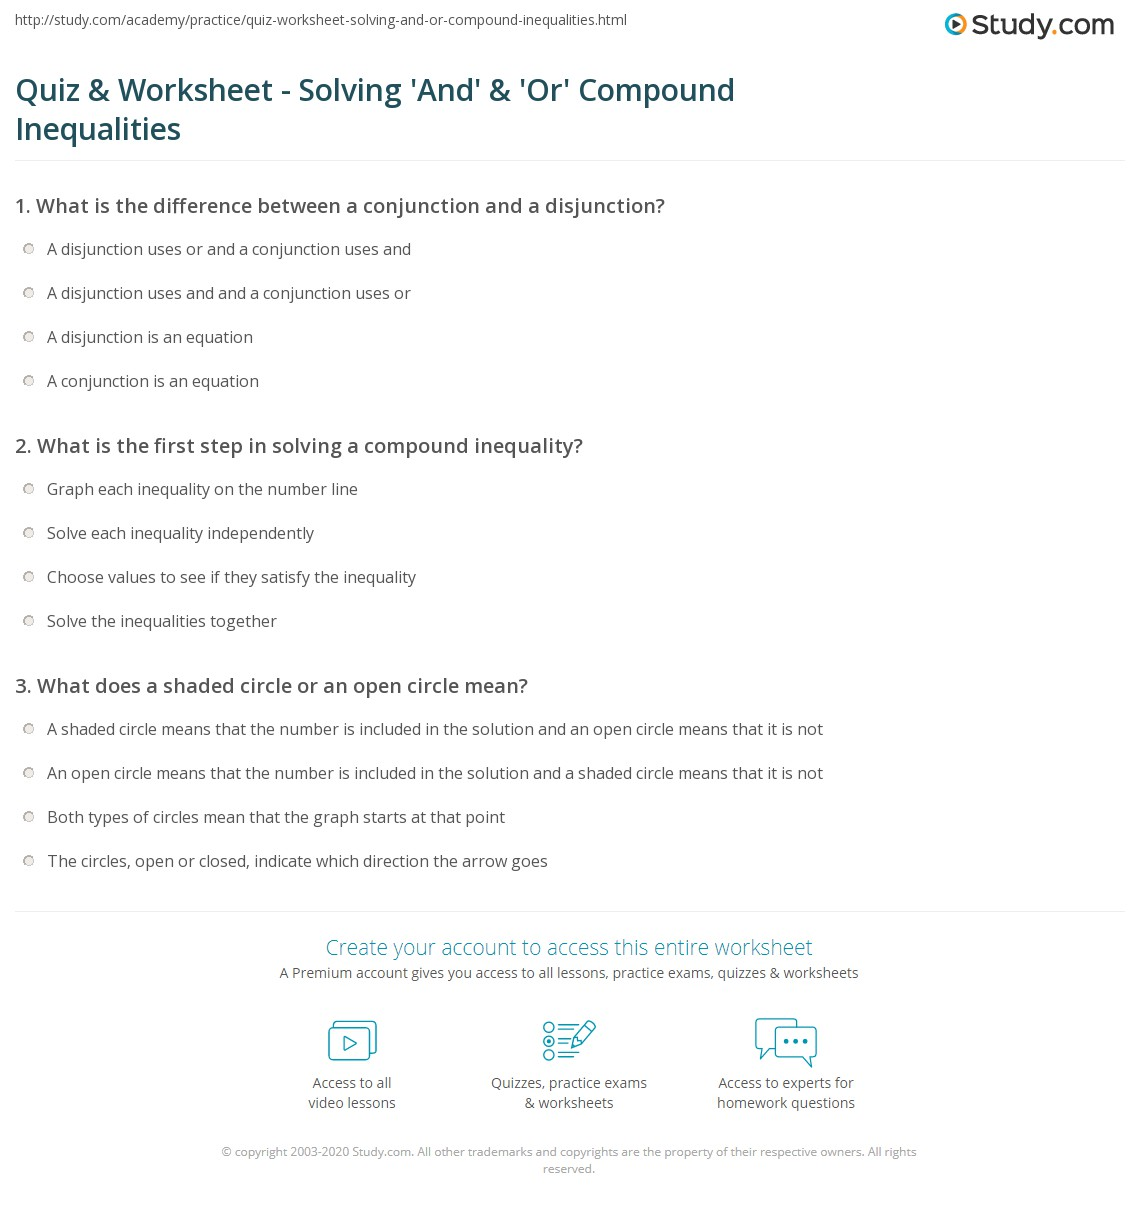 Quiz Worksheet Solving And Or Compound Inequalities